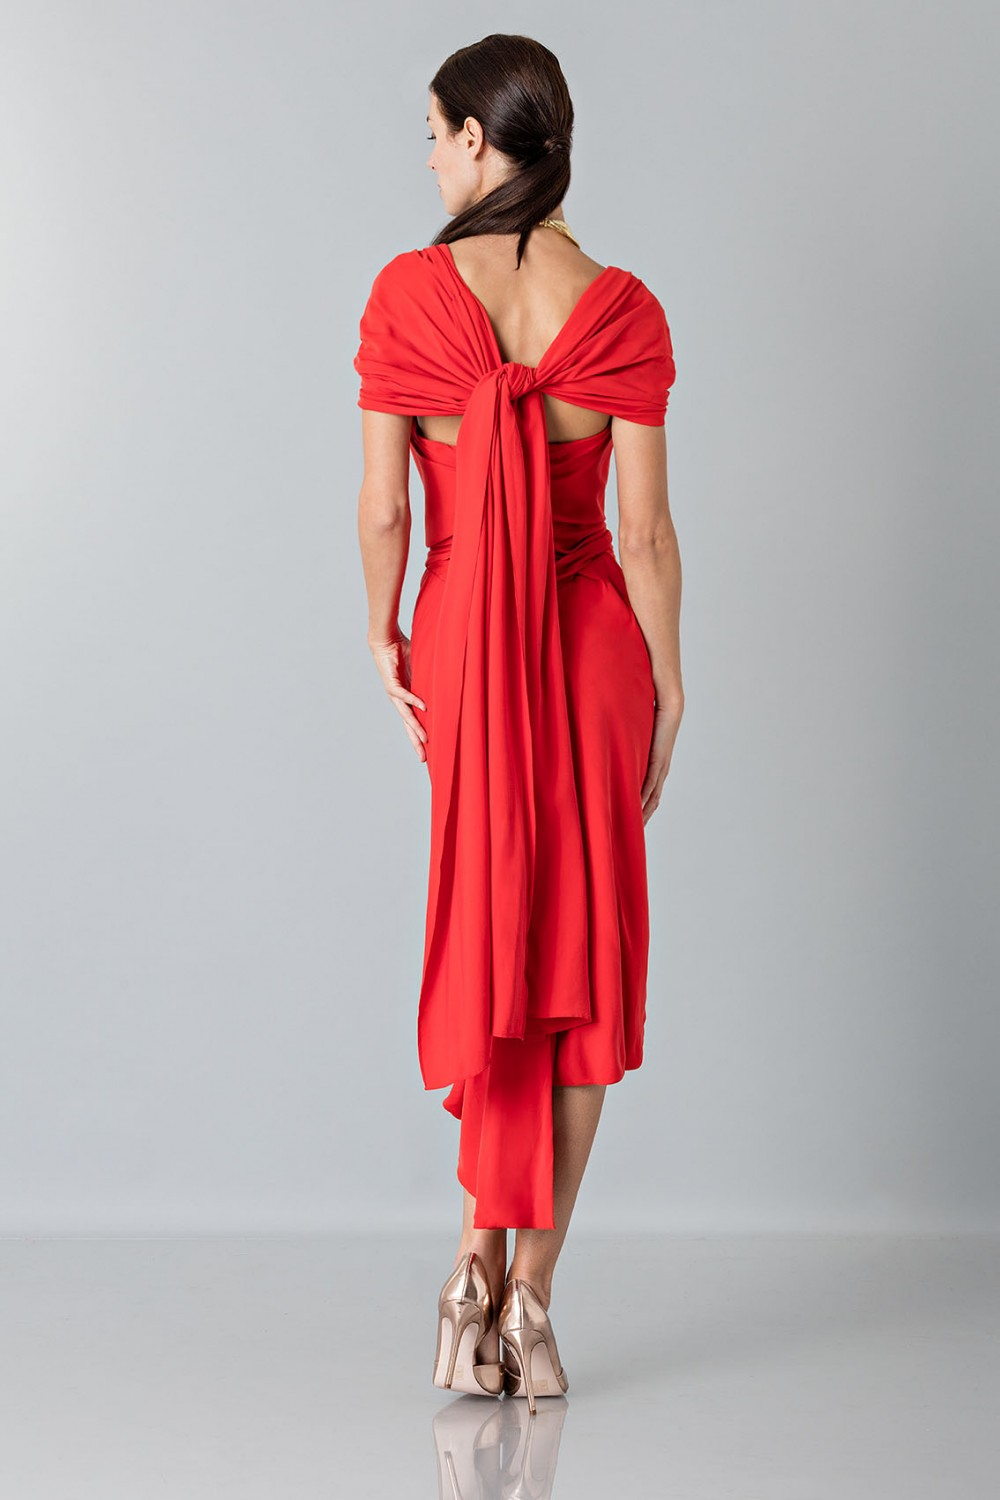 Buy a vivienne westwood dress silk dress for Vivienne westwood wedding dress price